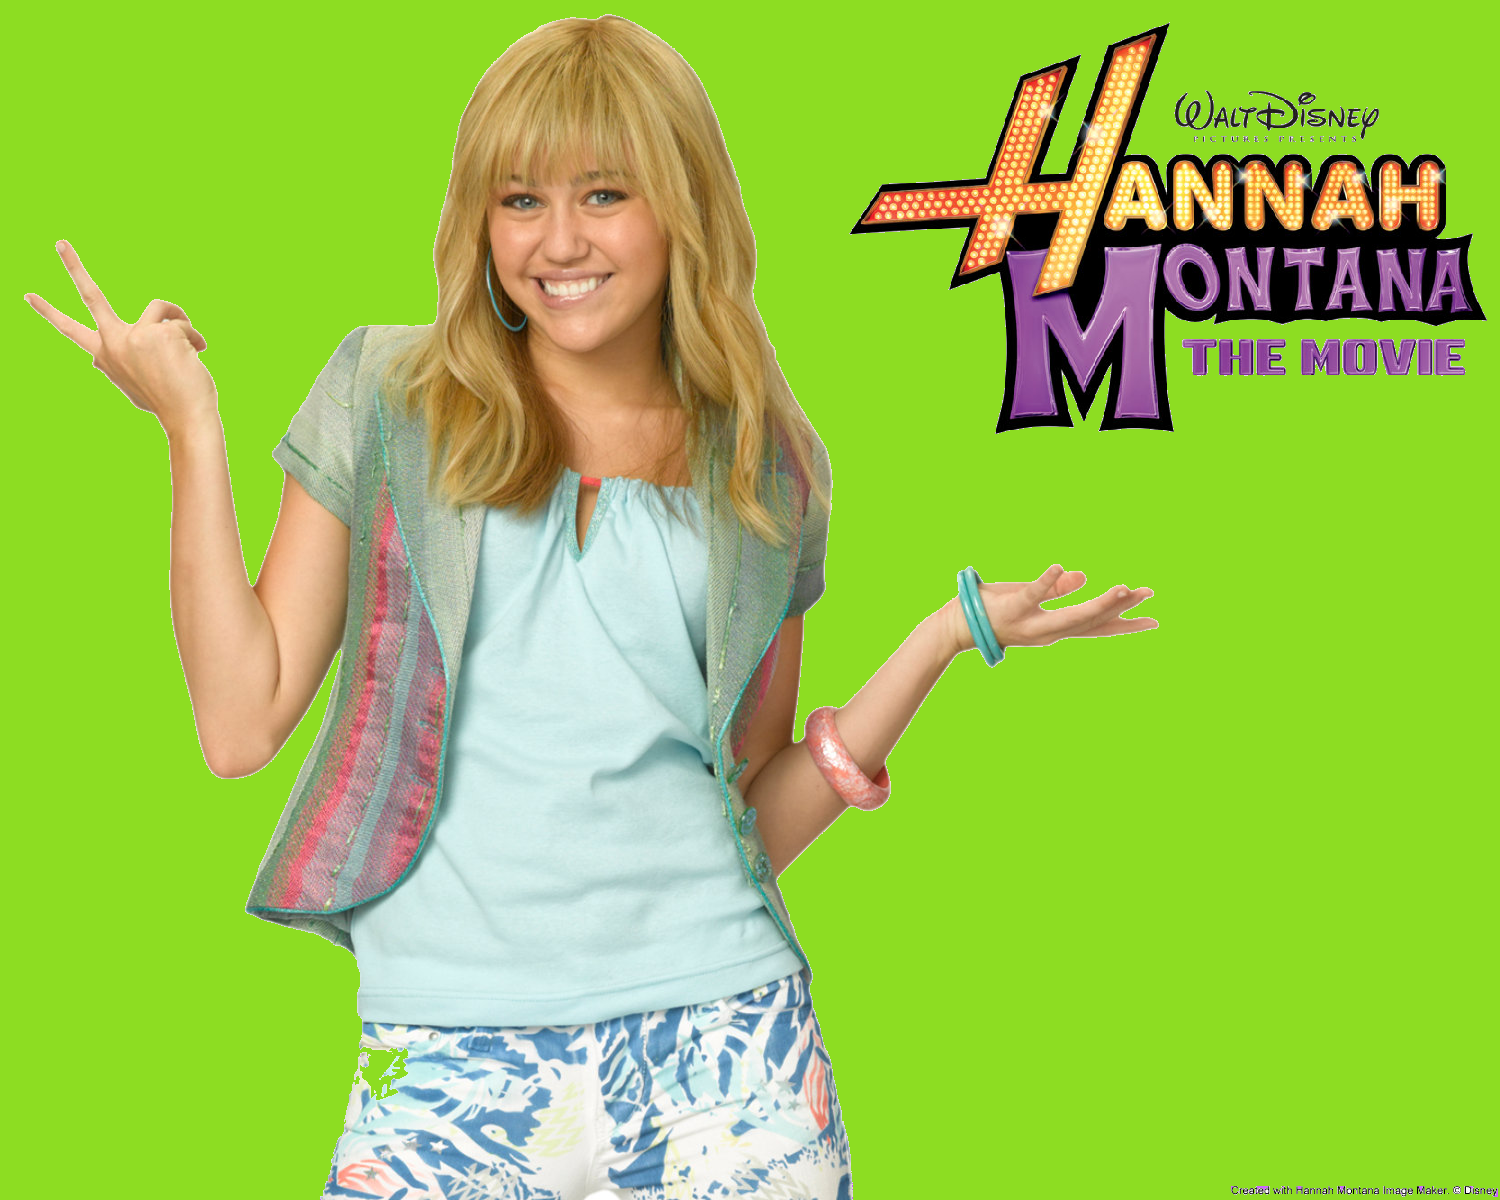 hannah montana the movie torrent download